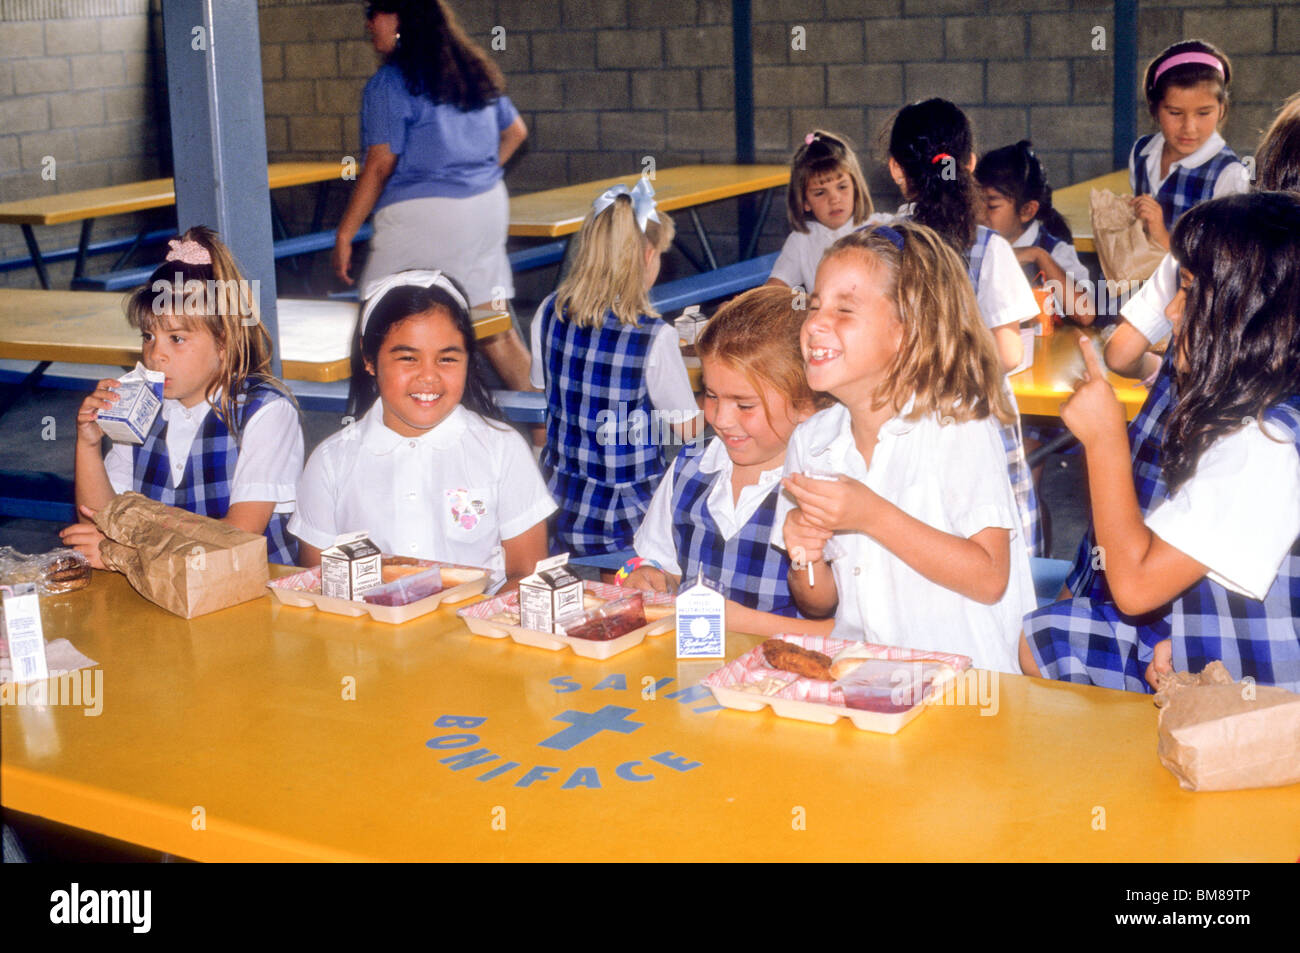 racial mix group of school girls eat lunch at table laugh share fun happy white Hispanic Asian - Stock Image